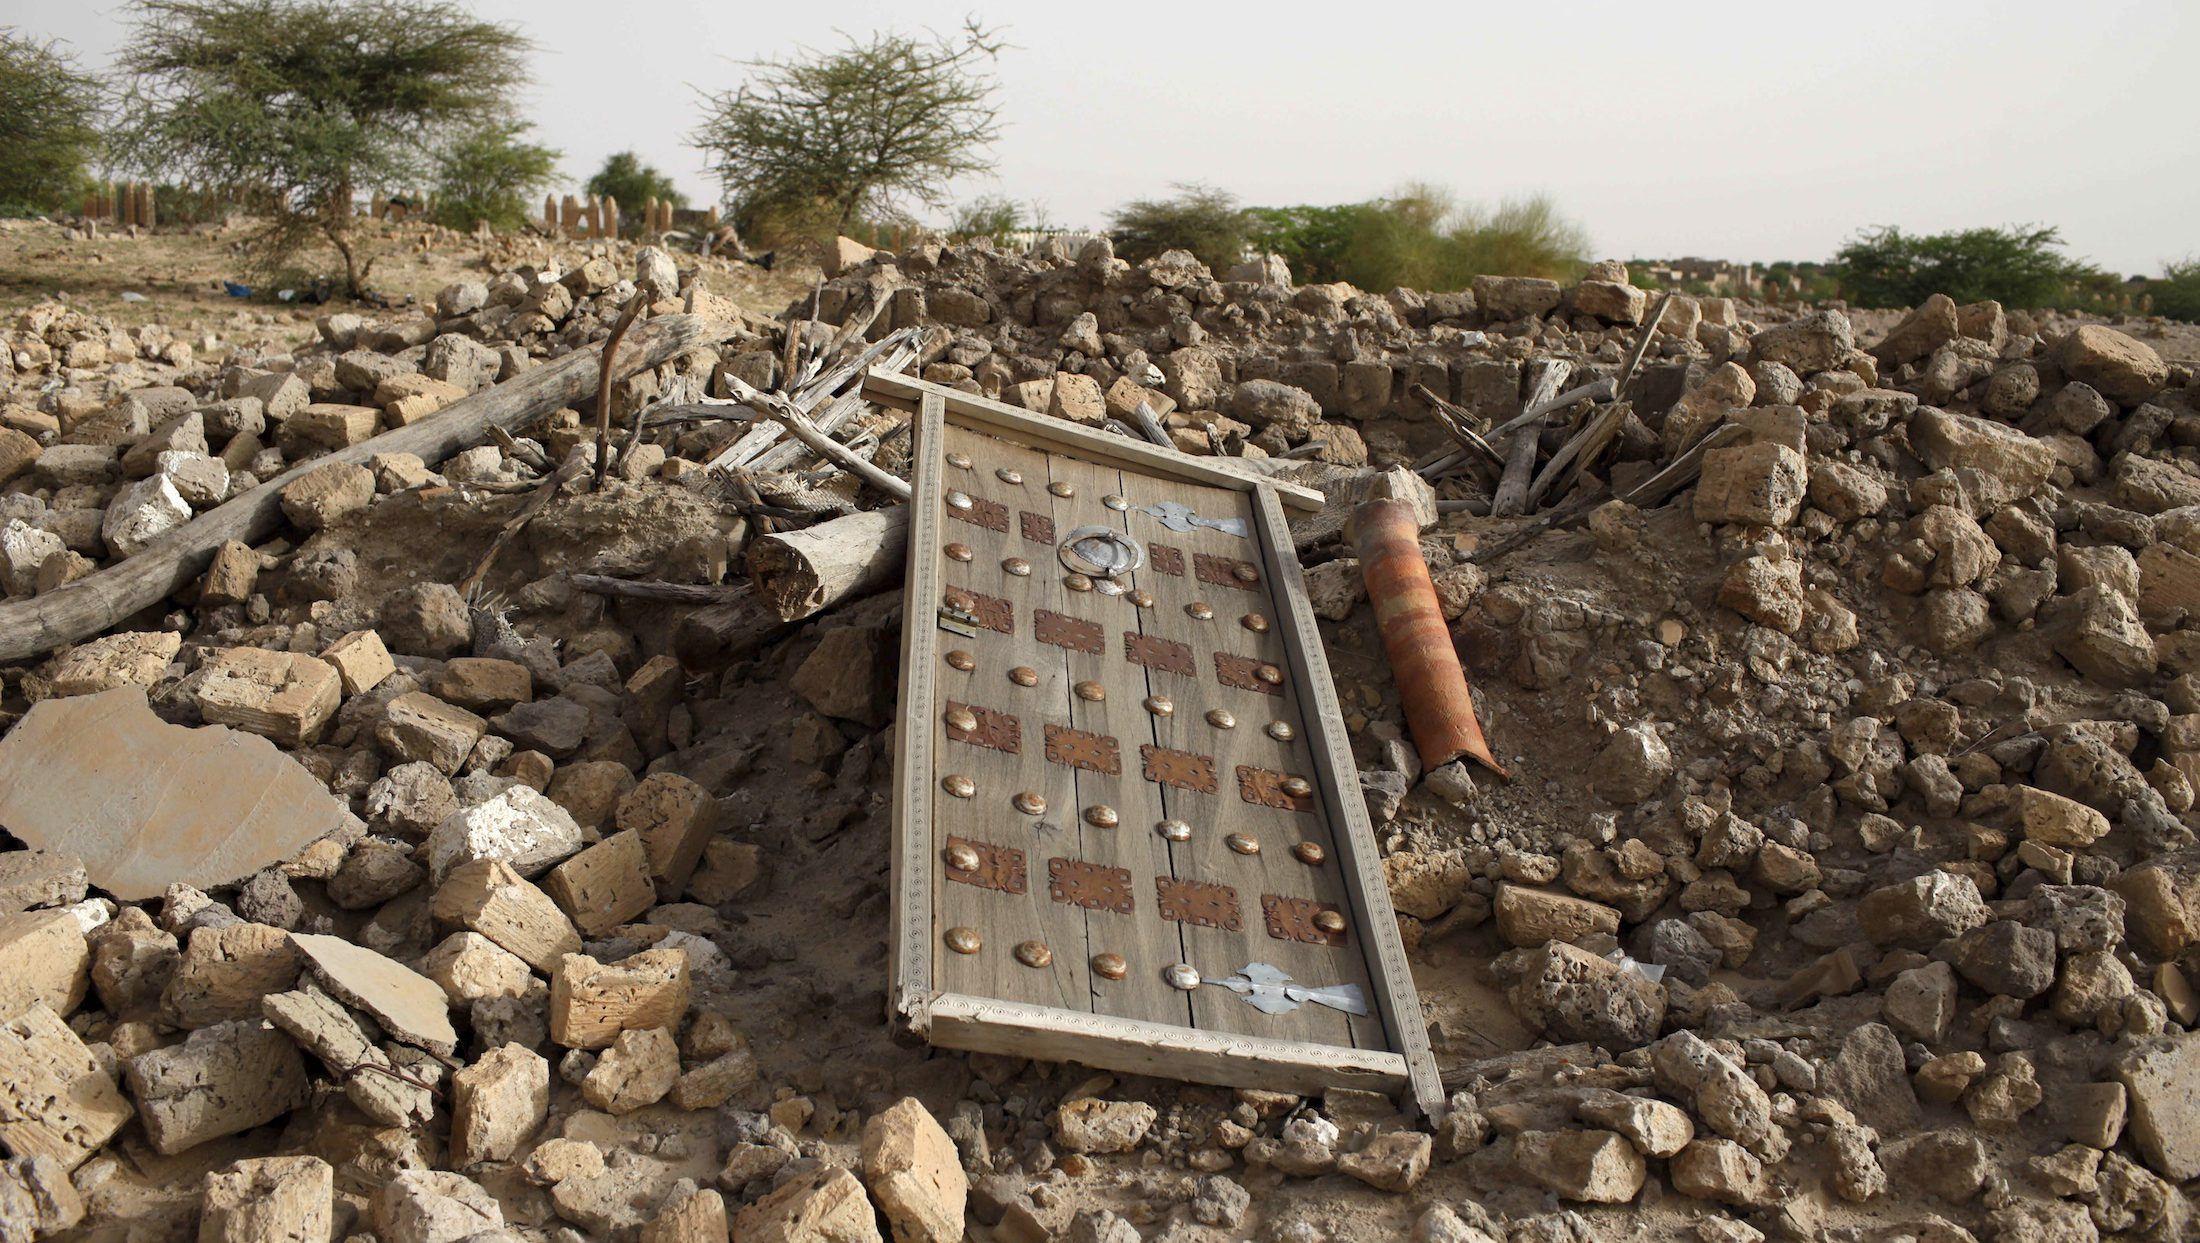 The rubble left from an ancient mausoleum destroyed by Islamist militants, is seen in Timbuktu, Mali, July